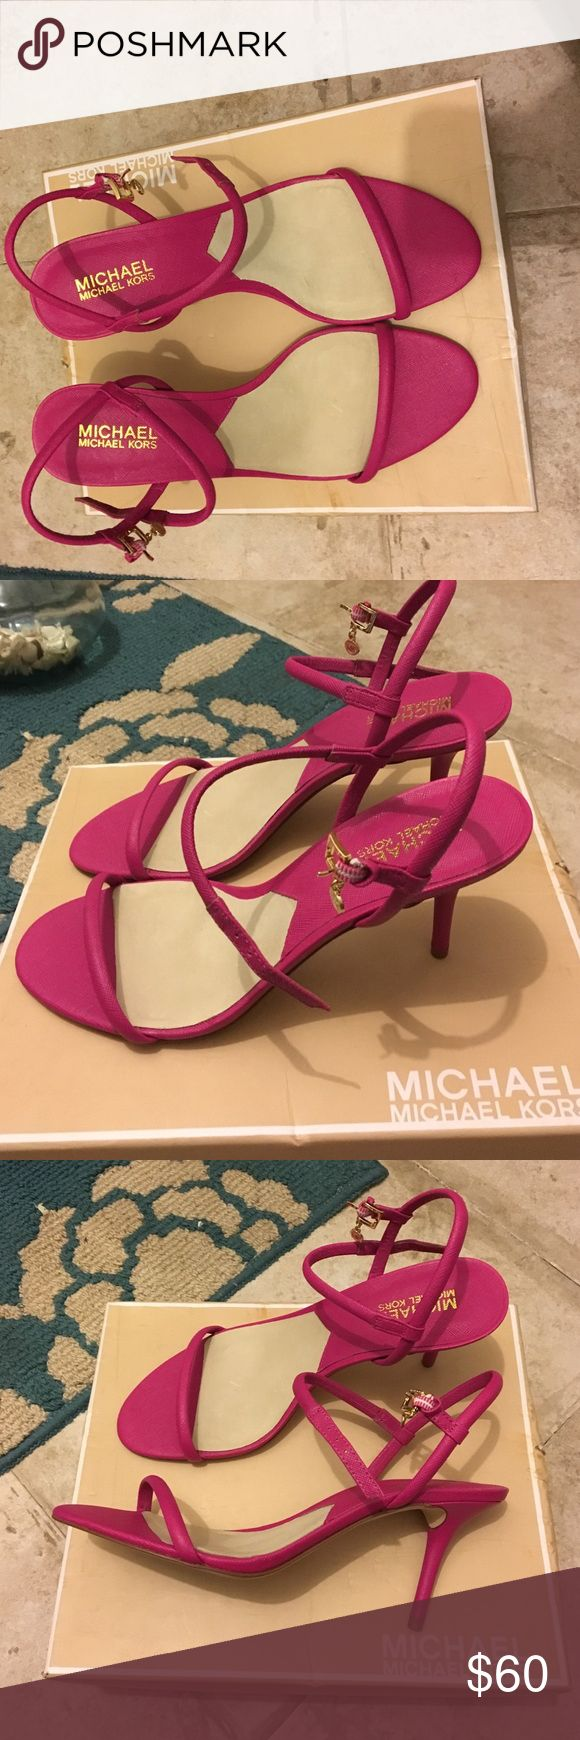 Michael kors - Carlene sandal size 9. Selling my Michael kors Carlene sandals i purchased from Macy's. I wore these in an indoors wedding reception (carpet area) so barely any scrapes on the bottom, almost like Brand new! MICHAEL Michael Kors Shoes Sandals